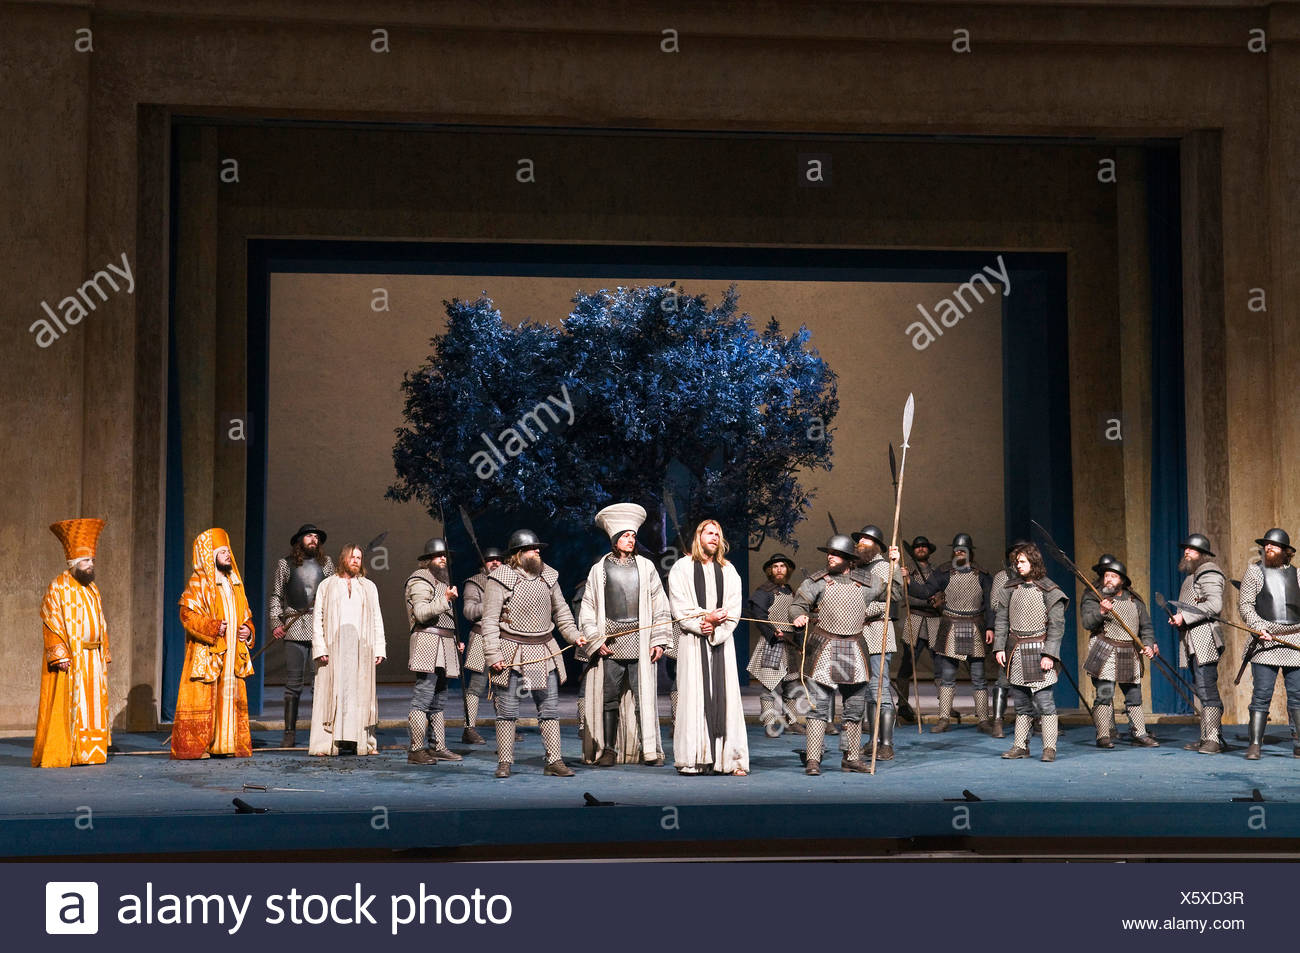 Having been betrayed by Jude, Jesus is arrested with Jude being at the scene, Oberammergau Passion Play, Bavaria - Stock Image